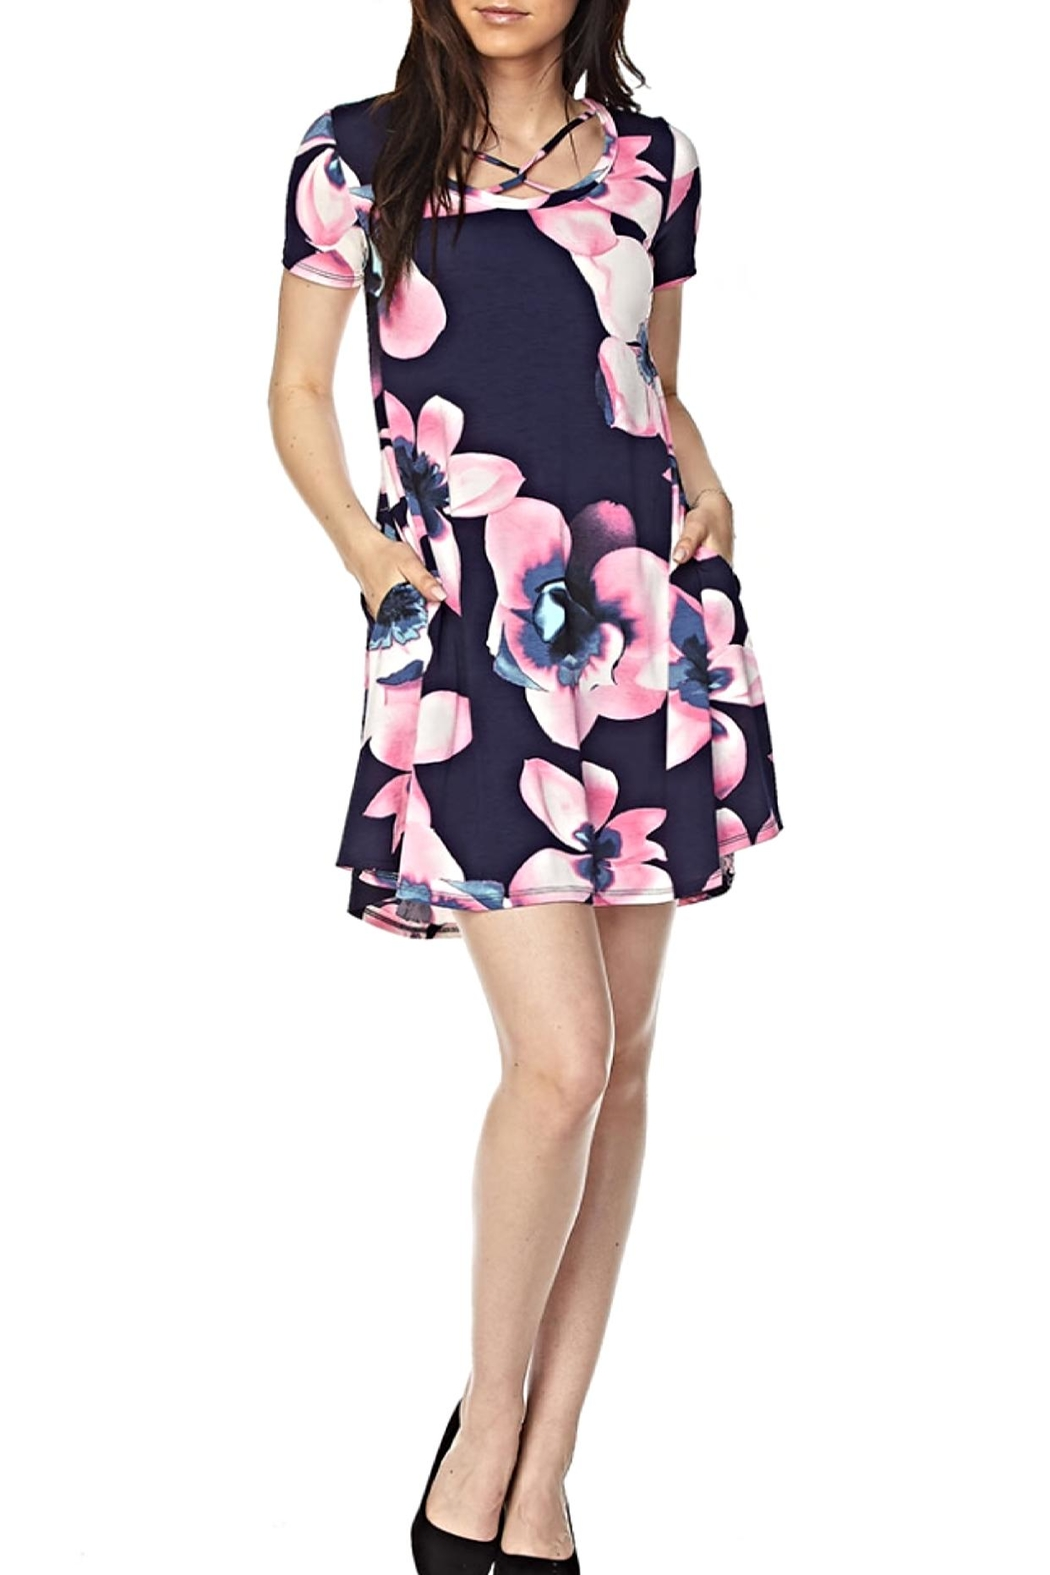 KITTY COUTURE  Navy Floral Tunic - Main Image